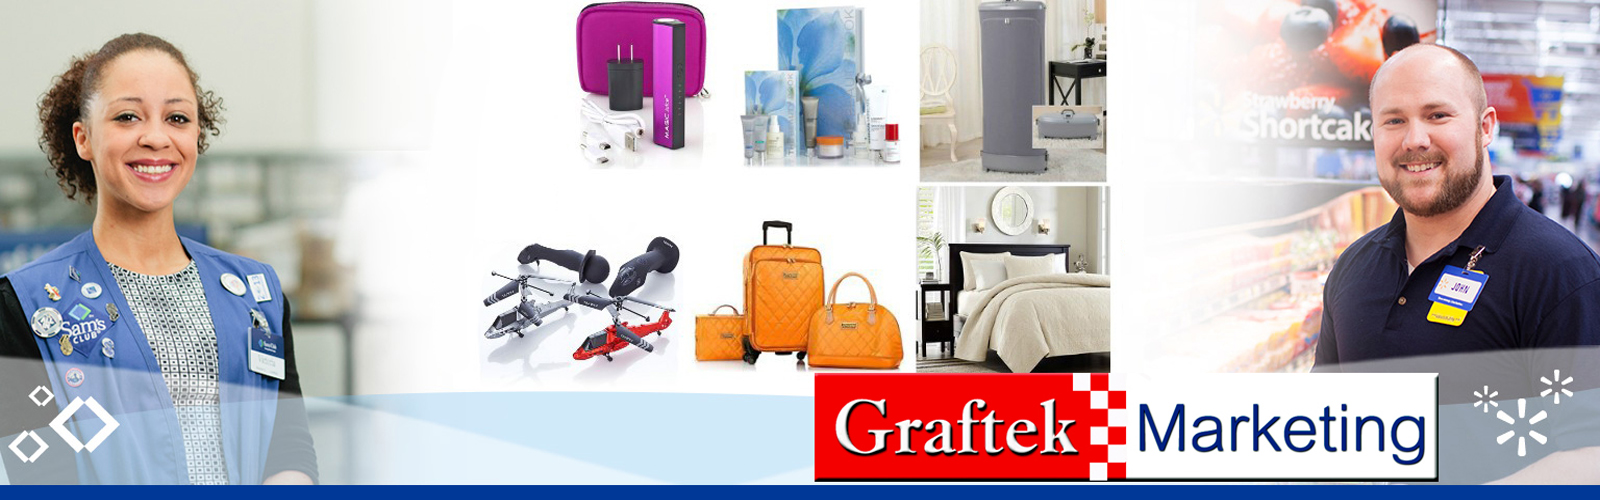 Graftek Marketing Welcome 1